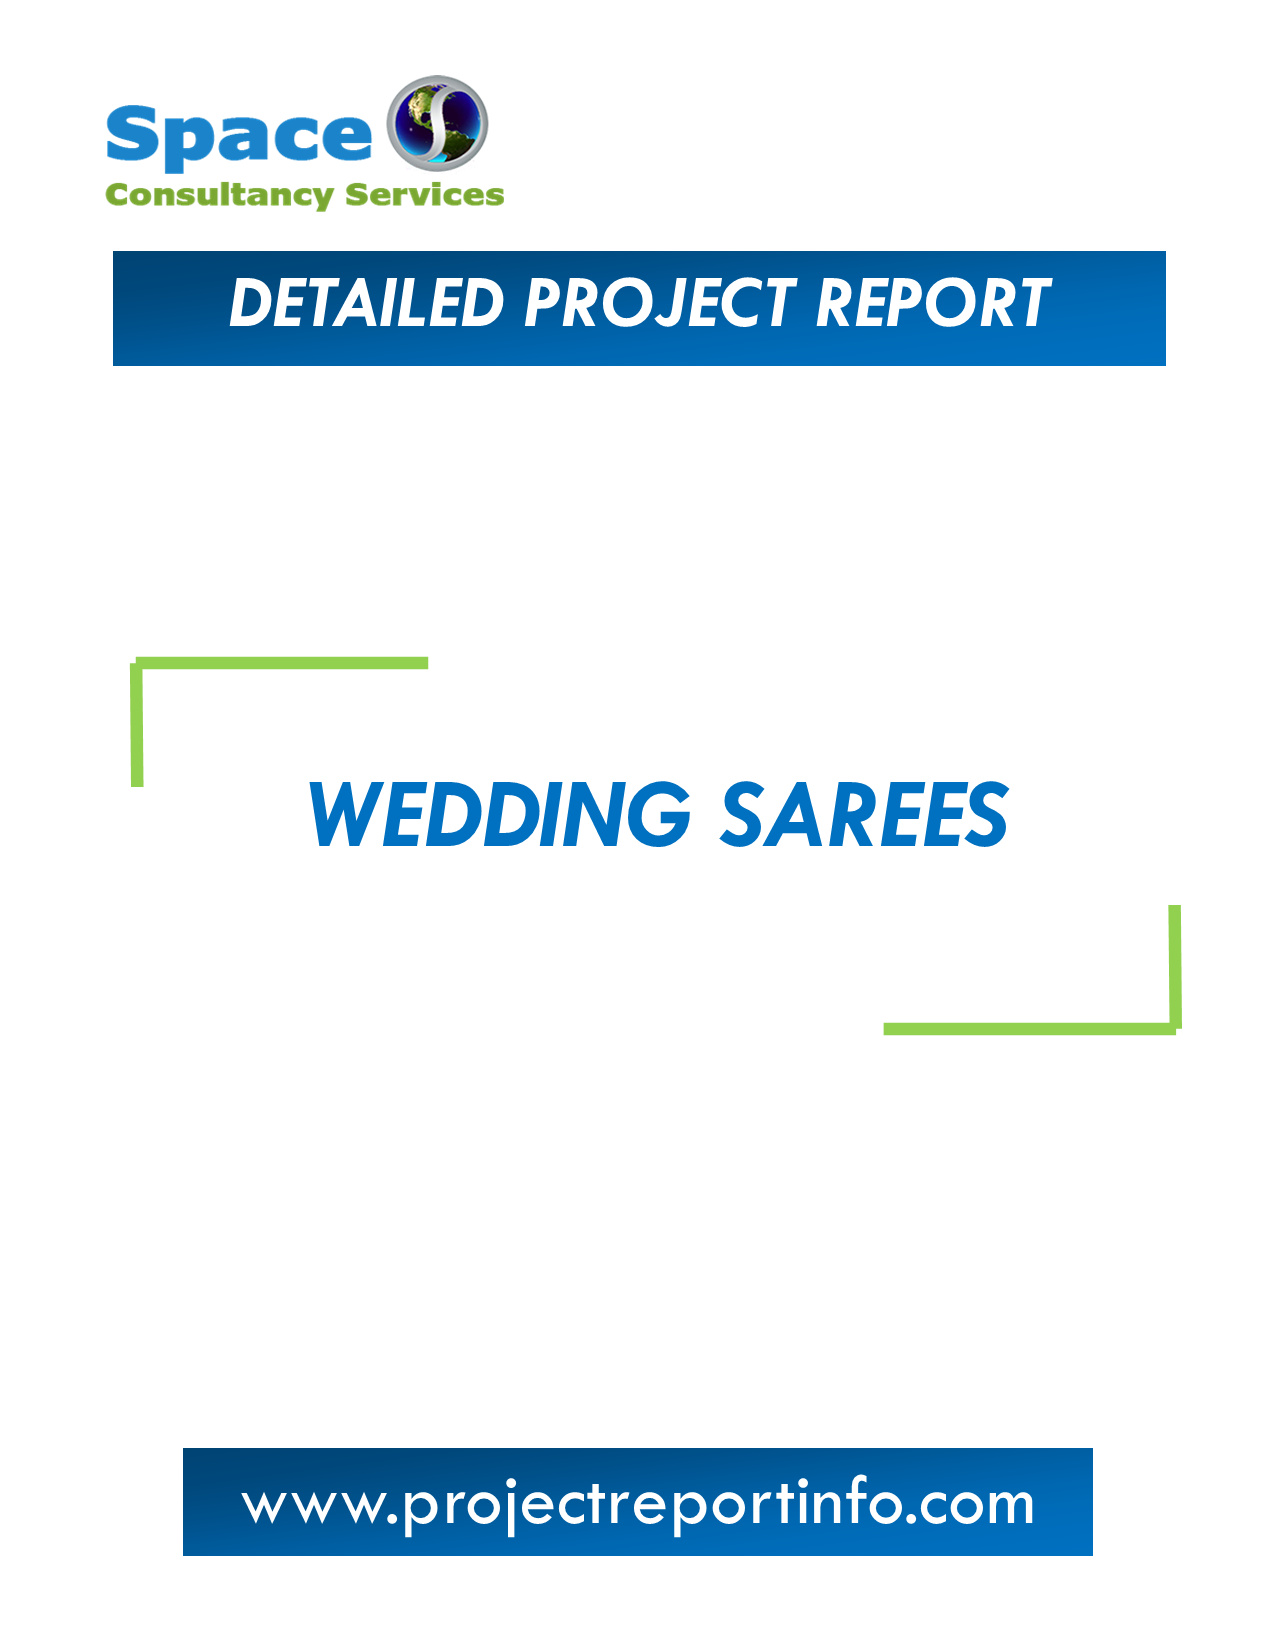 Project Report on Wedding Sarees Manufacturing